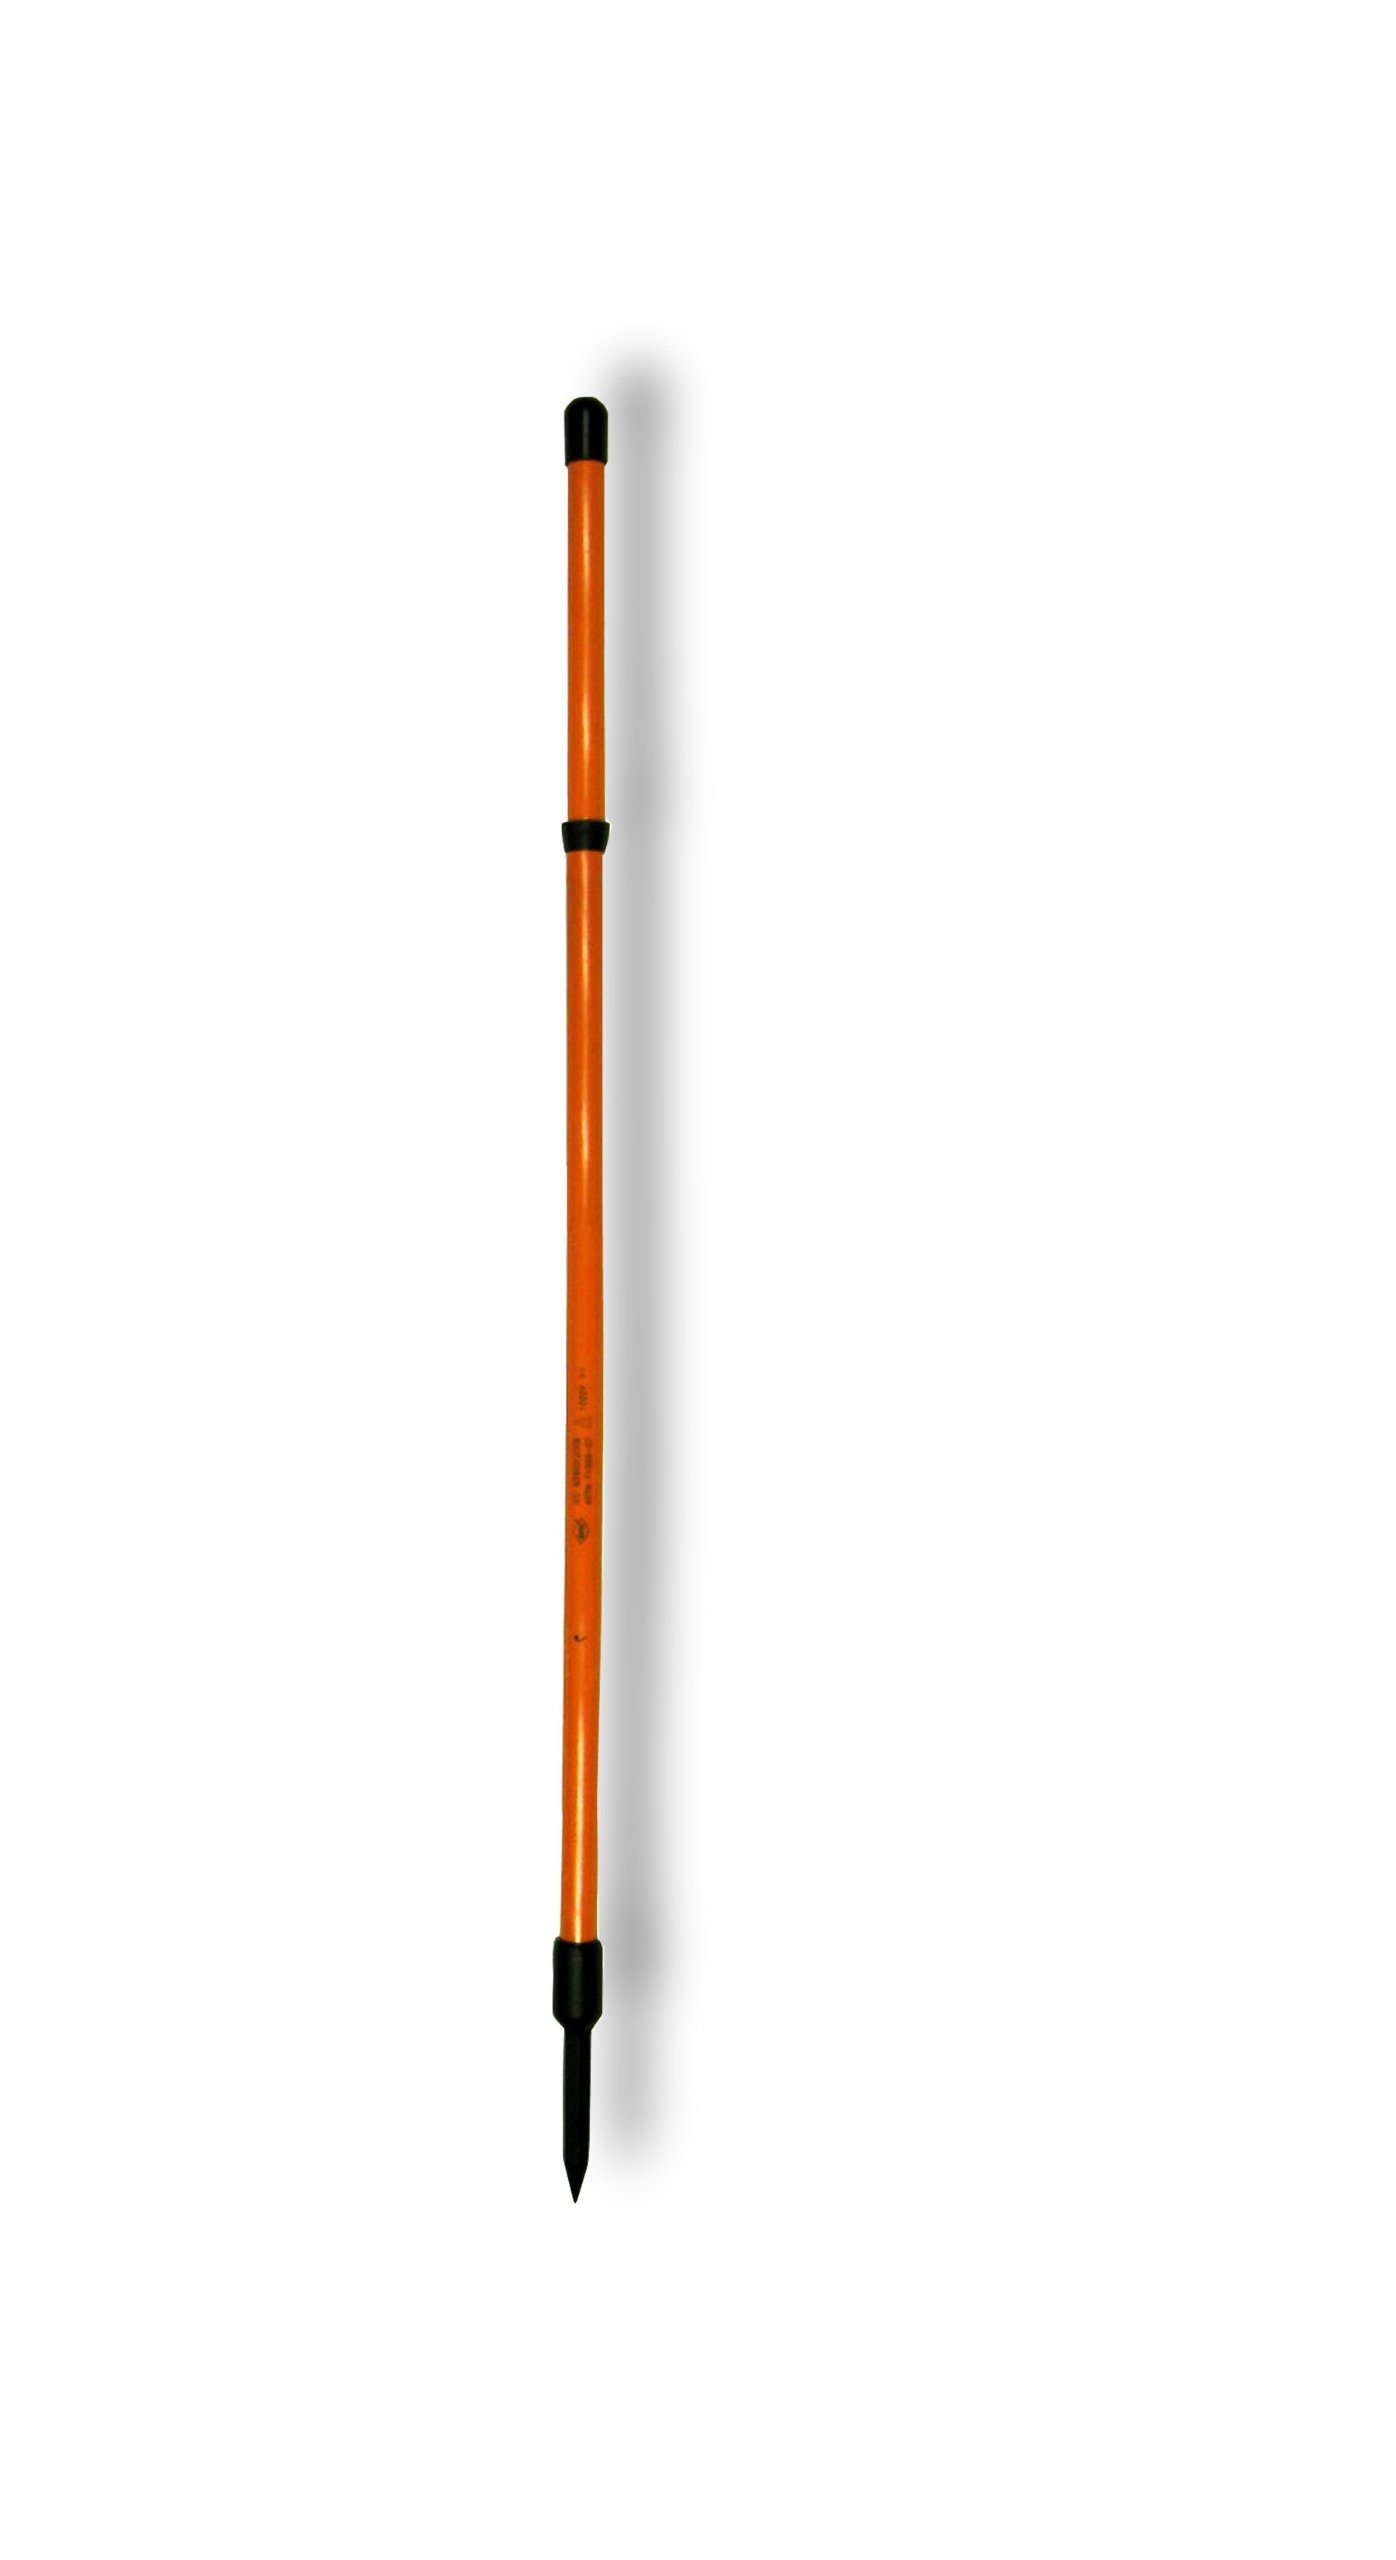 Nupla NC-DBP6 Digging Bar with Solid Handle and EC Grip, 72'' Handle Length